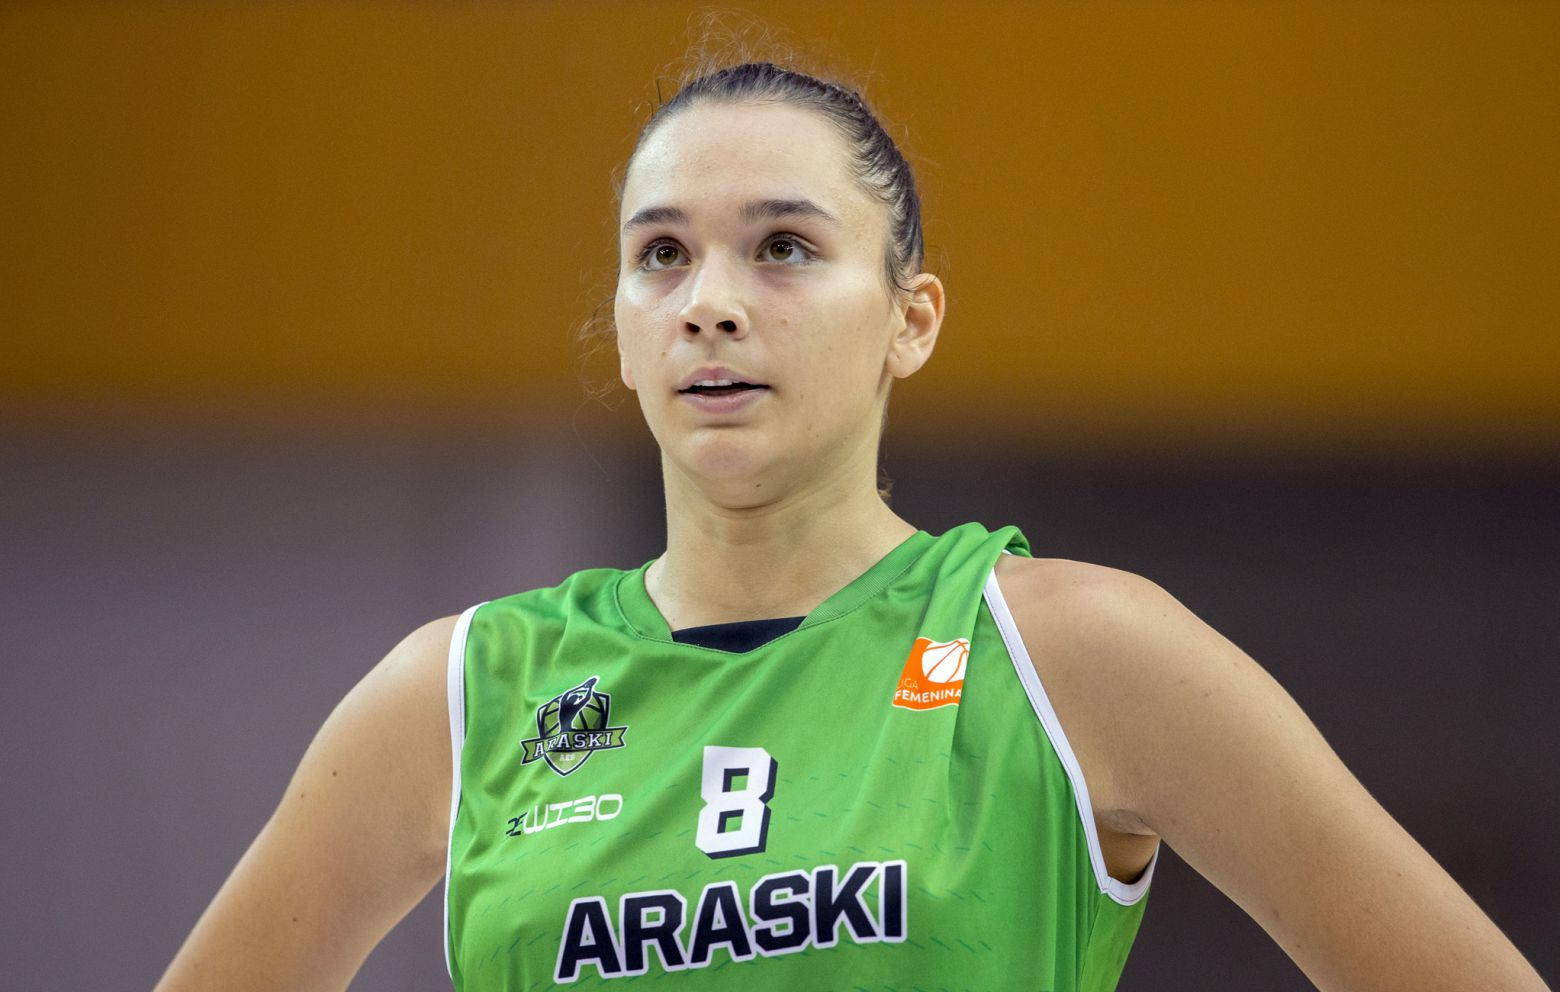 IRATI ETXARRI has signed with Sedis Cadí